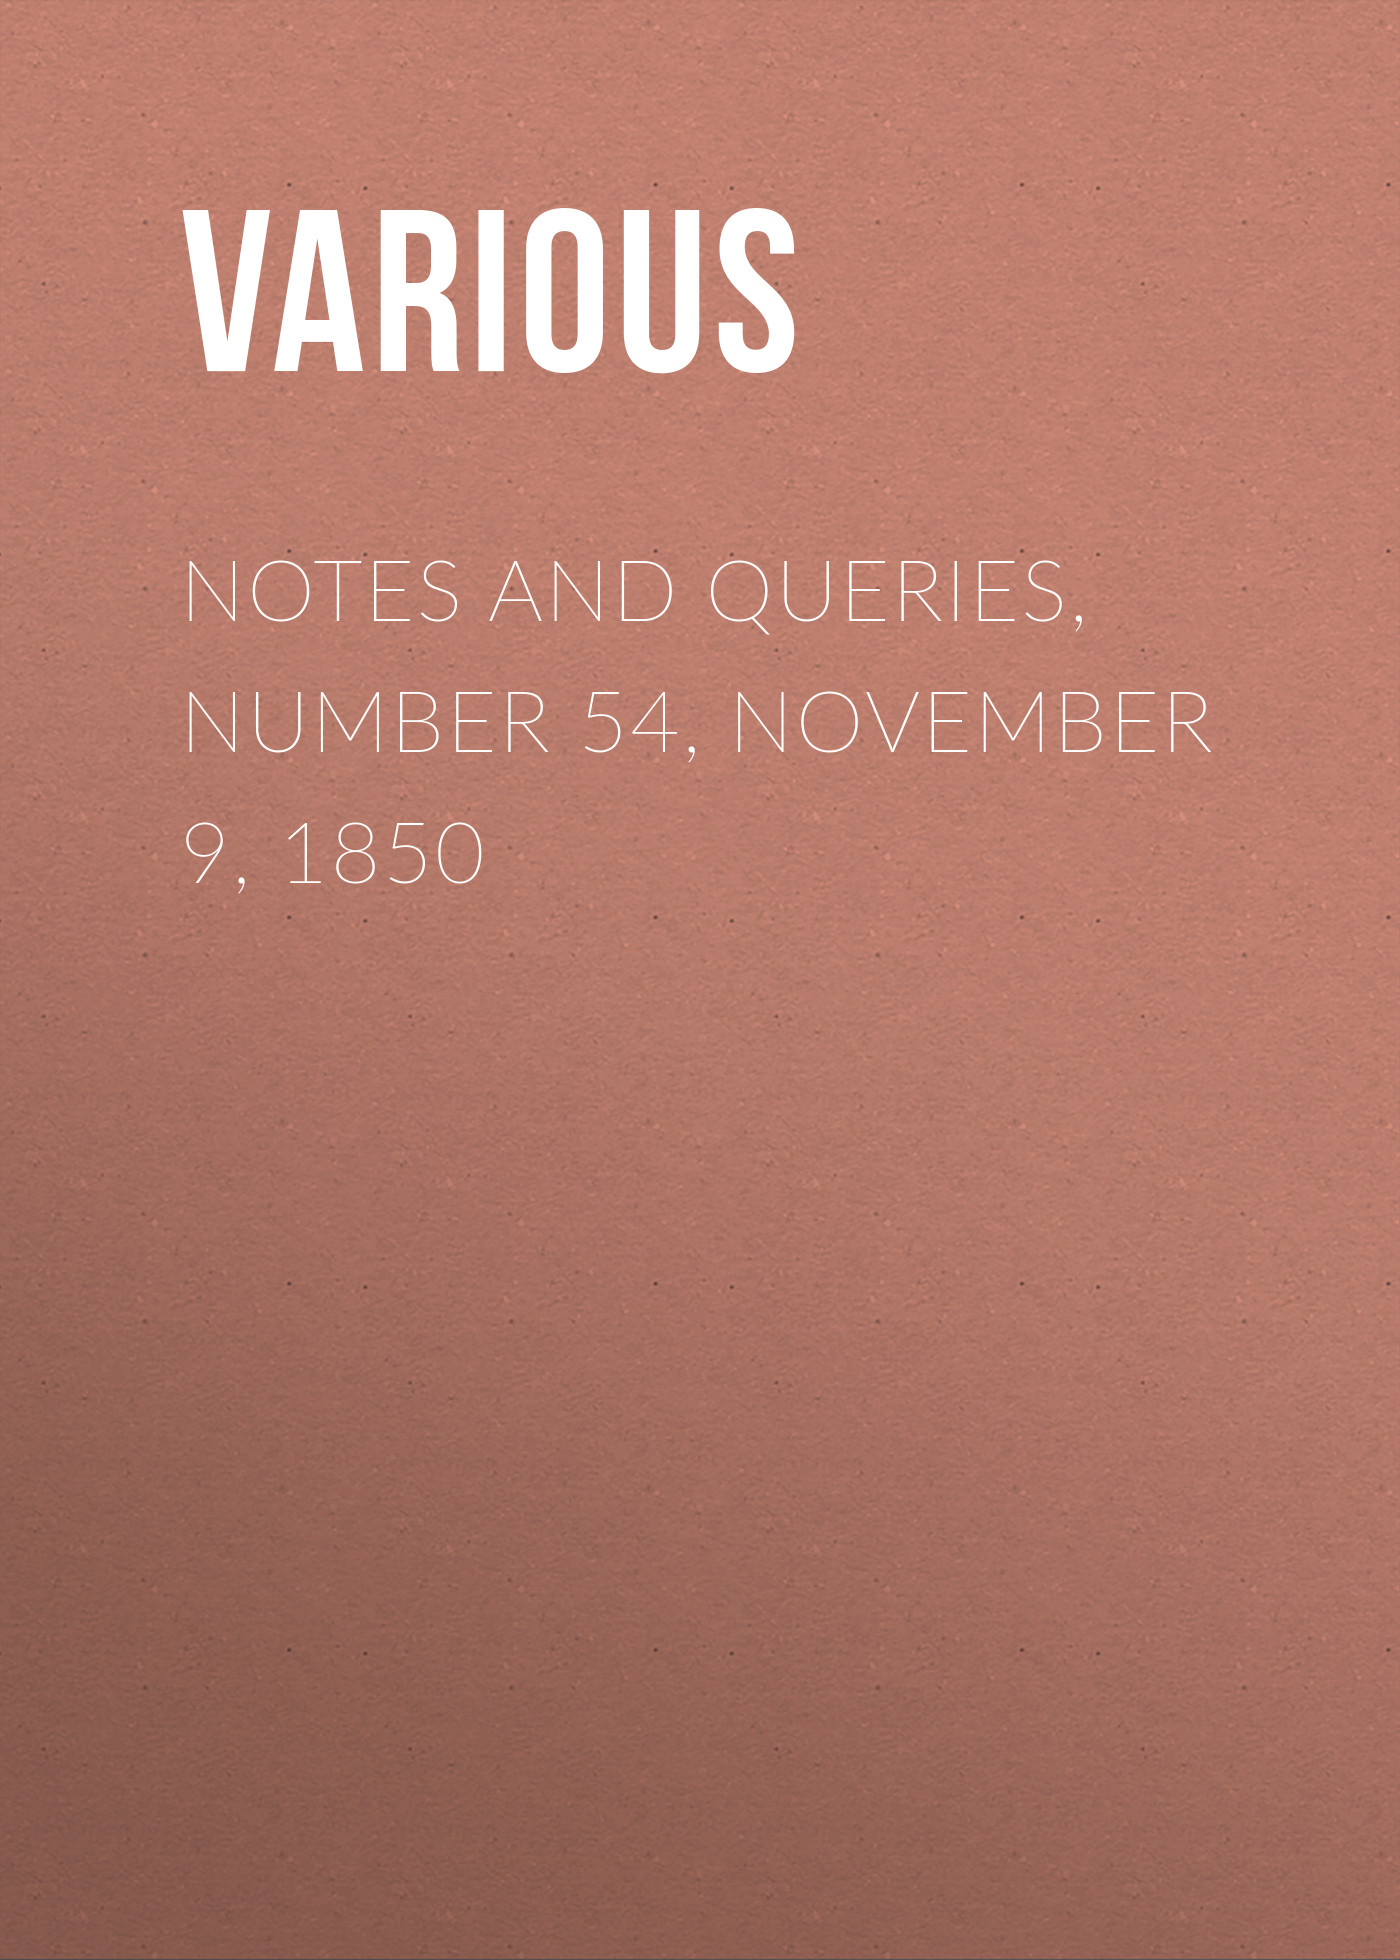 Various Notes and Queries, Number 54, November 9, 1850